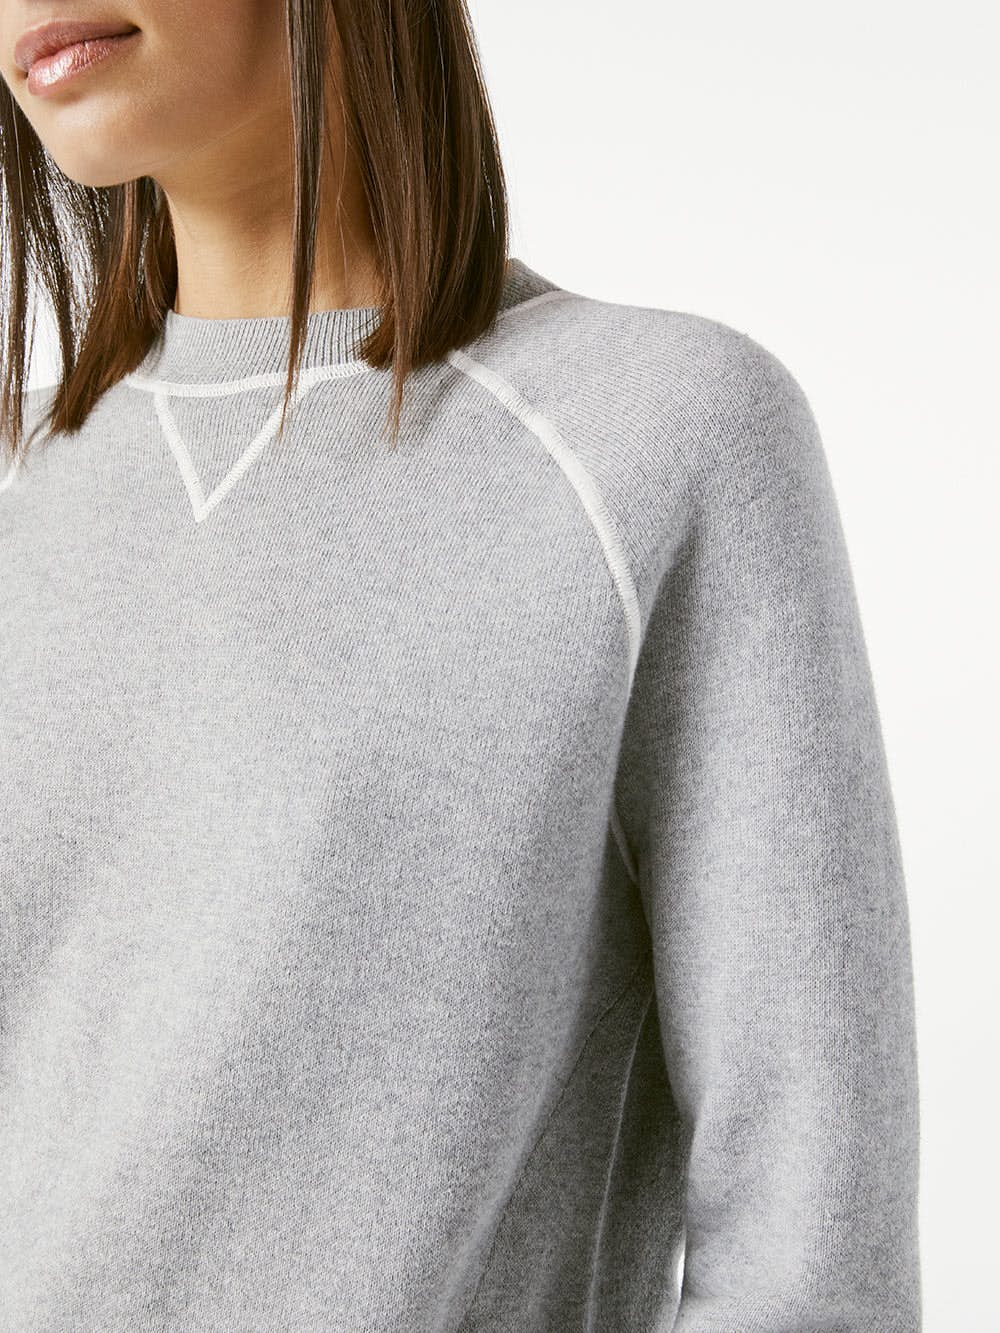 sweater detail view